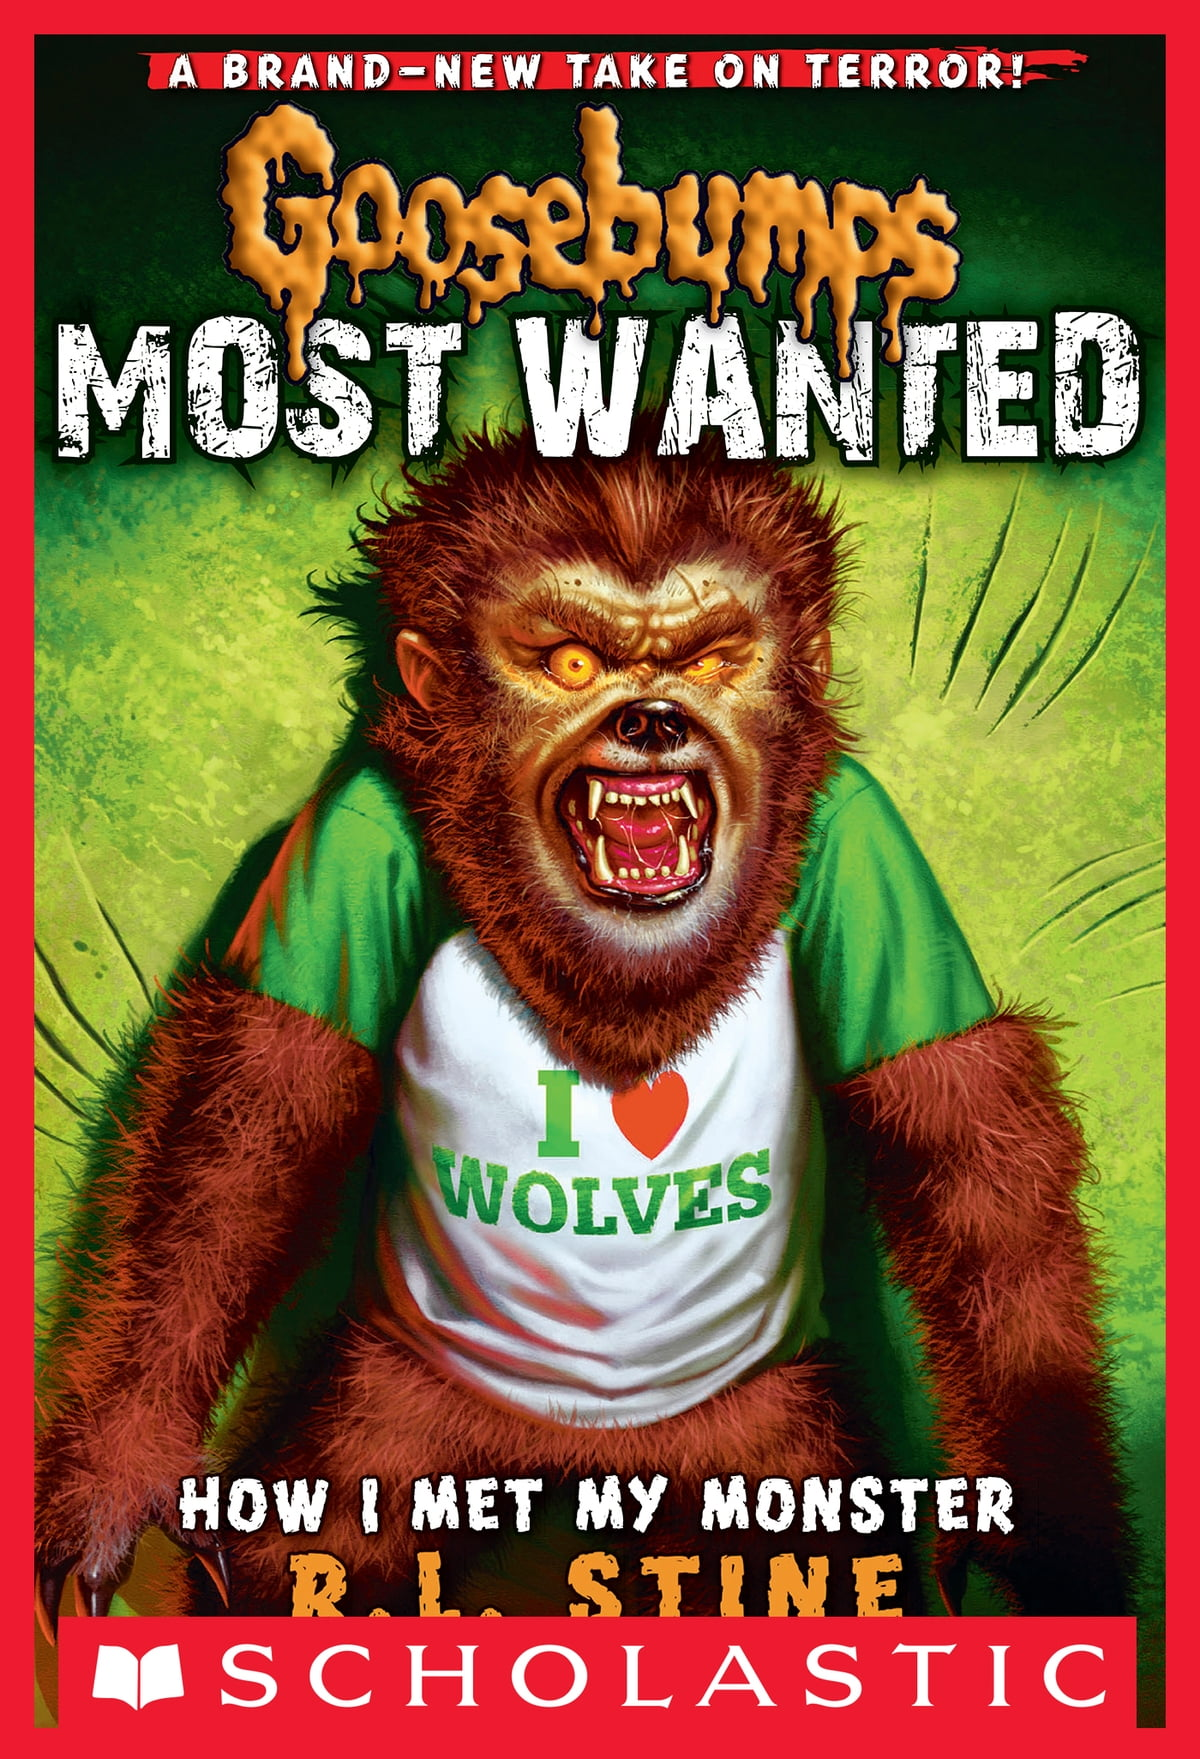 Goosebumps Most Wanted 3 How I Met My Monster Ebook By R L Stine 9780545510172 Rakuten Kobo United States